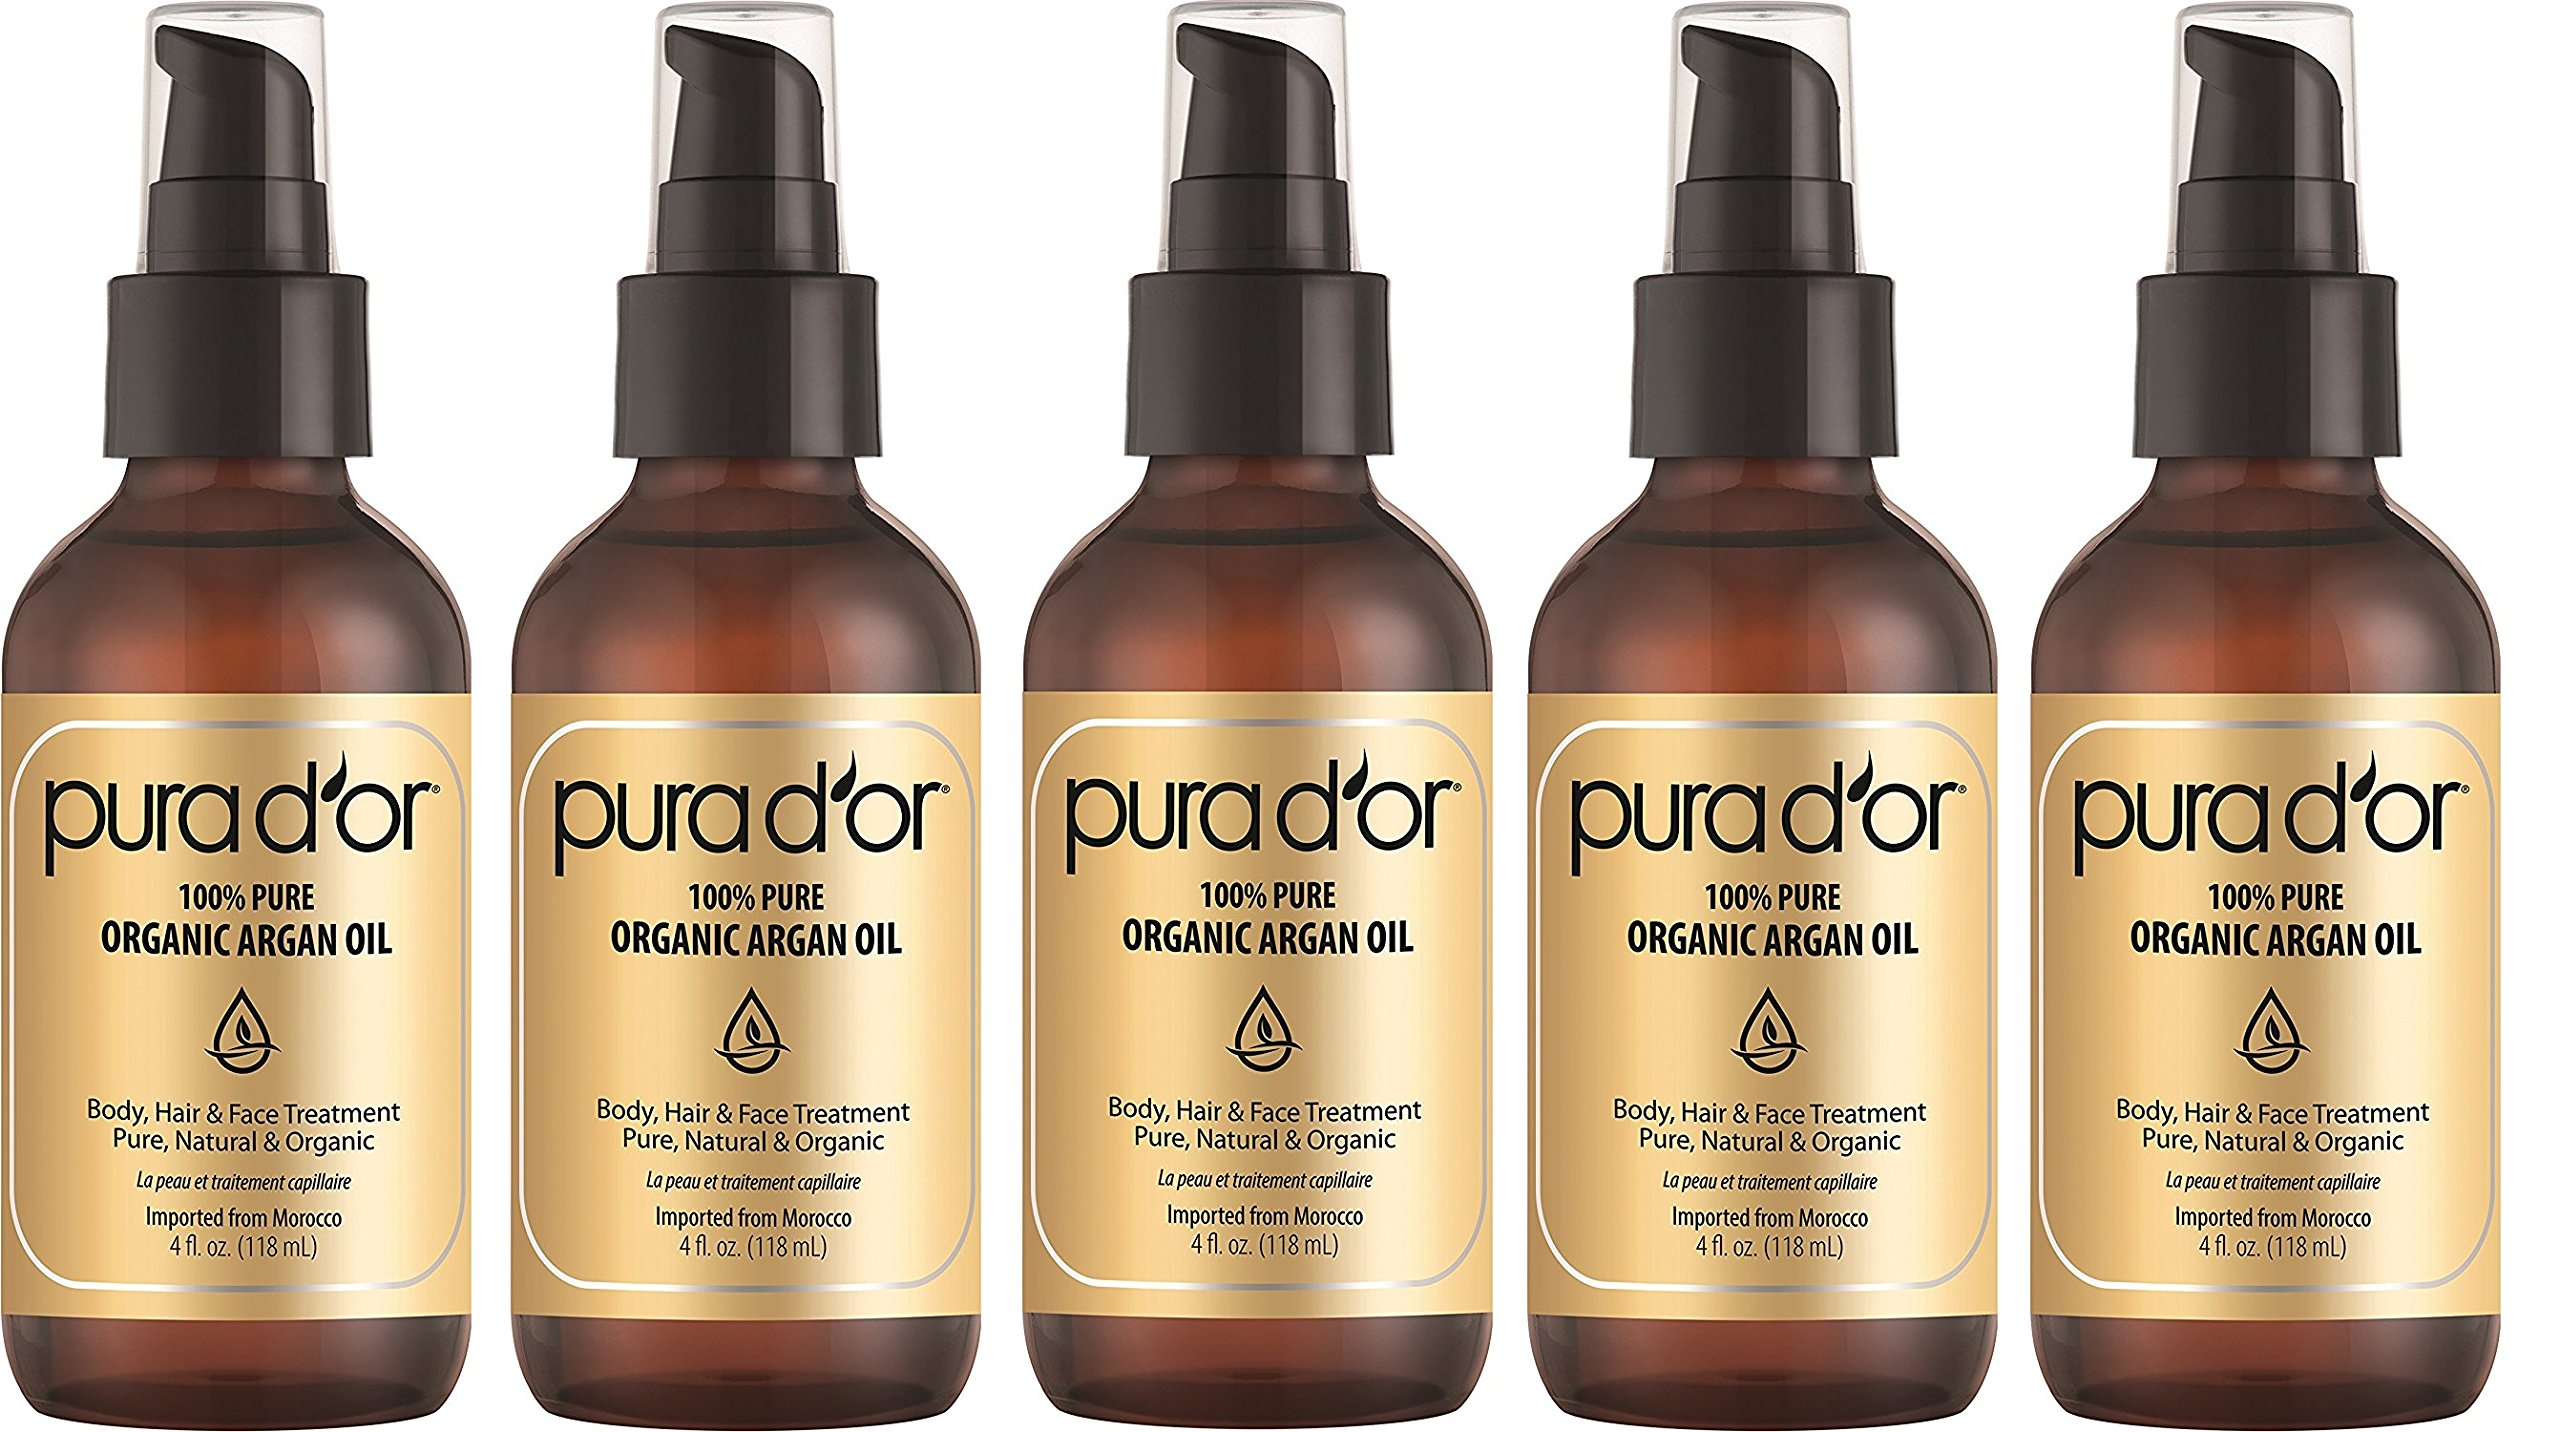 PURA DOR Organic Moroccan LtZjdP Argan Oil 100 Percent Pure Cold Pressed and USDA Organic Anti-Aging For Face, Hair, Skin and Nails, 4 Fluid Ounce, 5 Pack